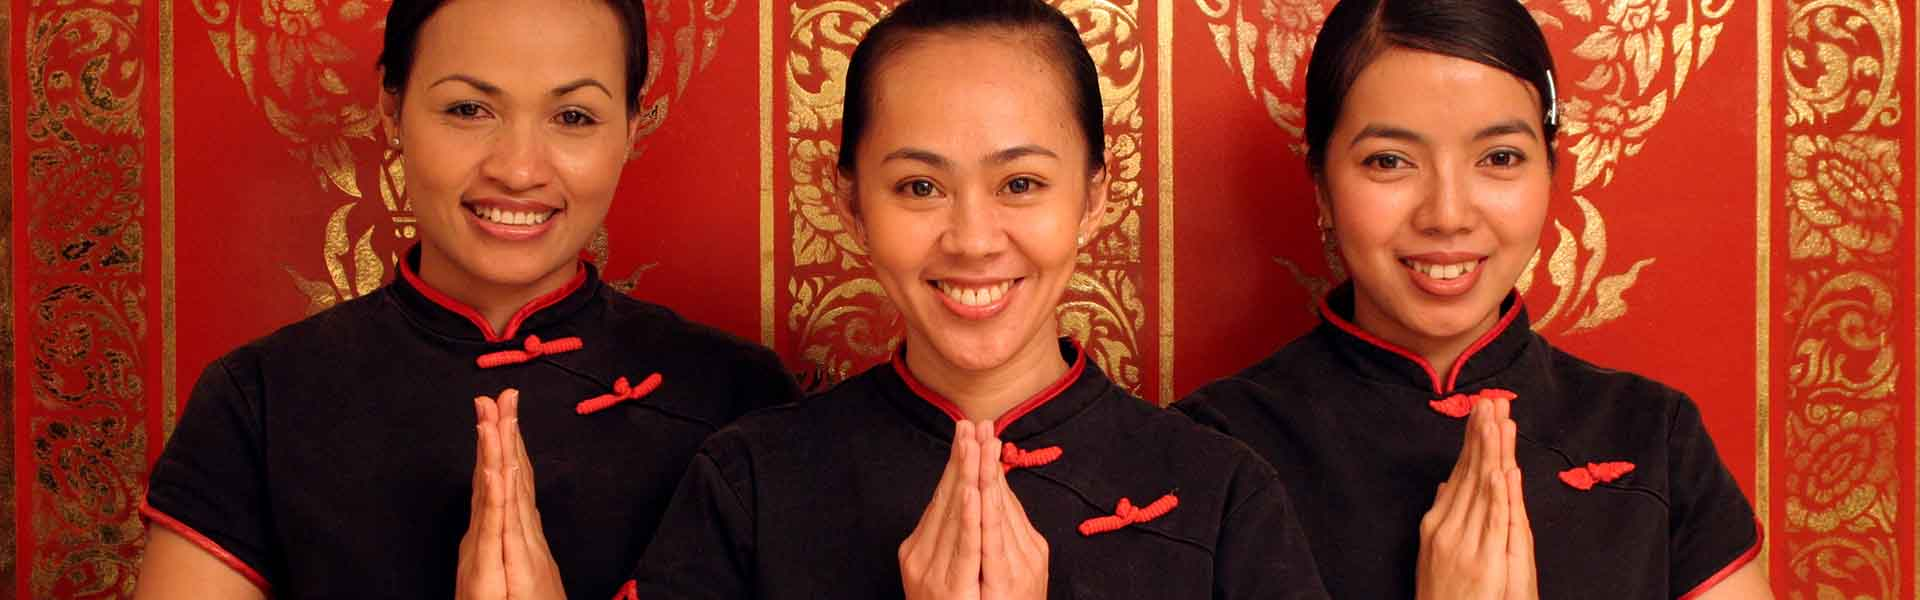 Thai Therapists | SenSpa at Careys Manor